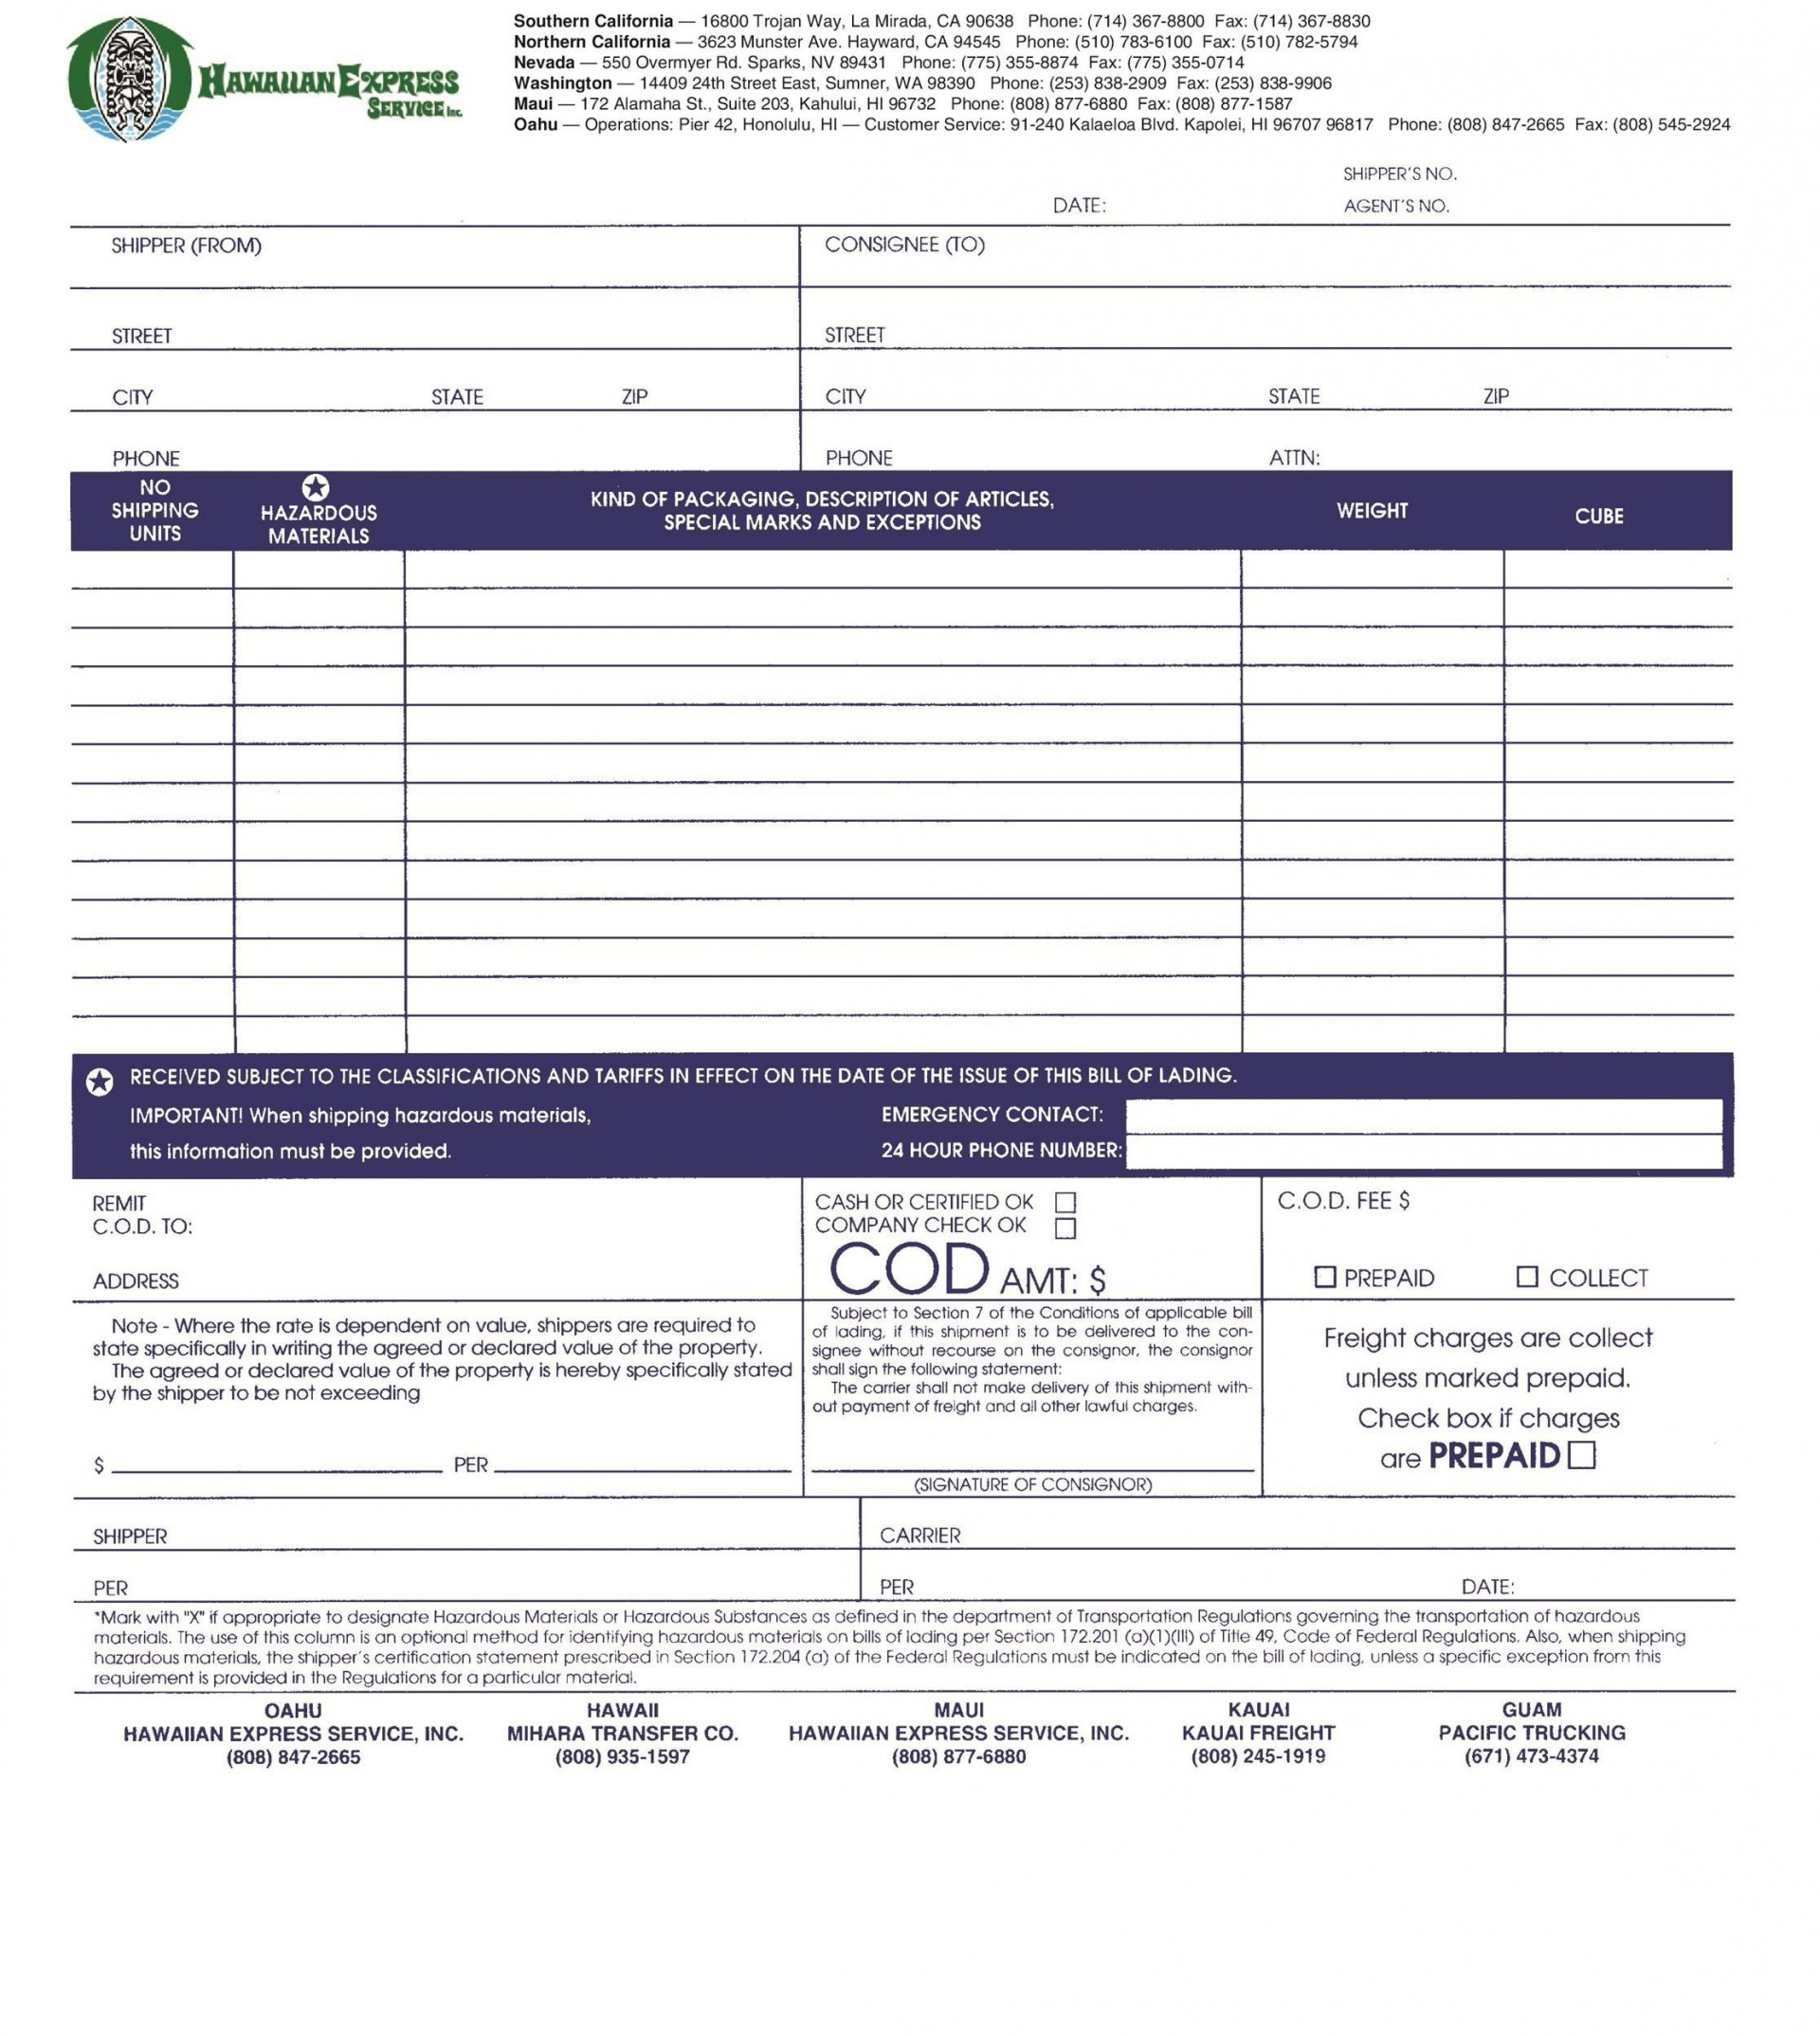 006 Remarkable Free Bill Of Lading Template Inspiration  Download Pdf Form1920